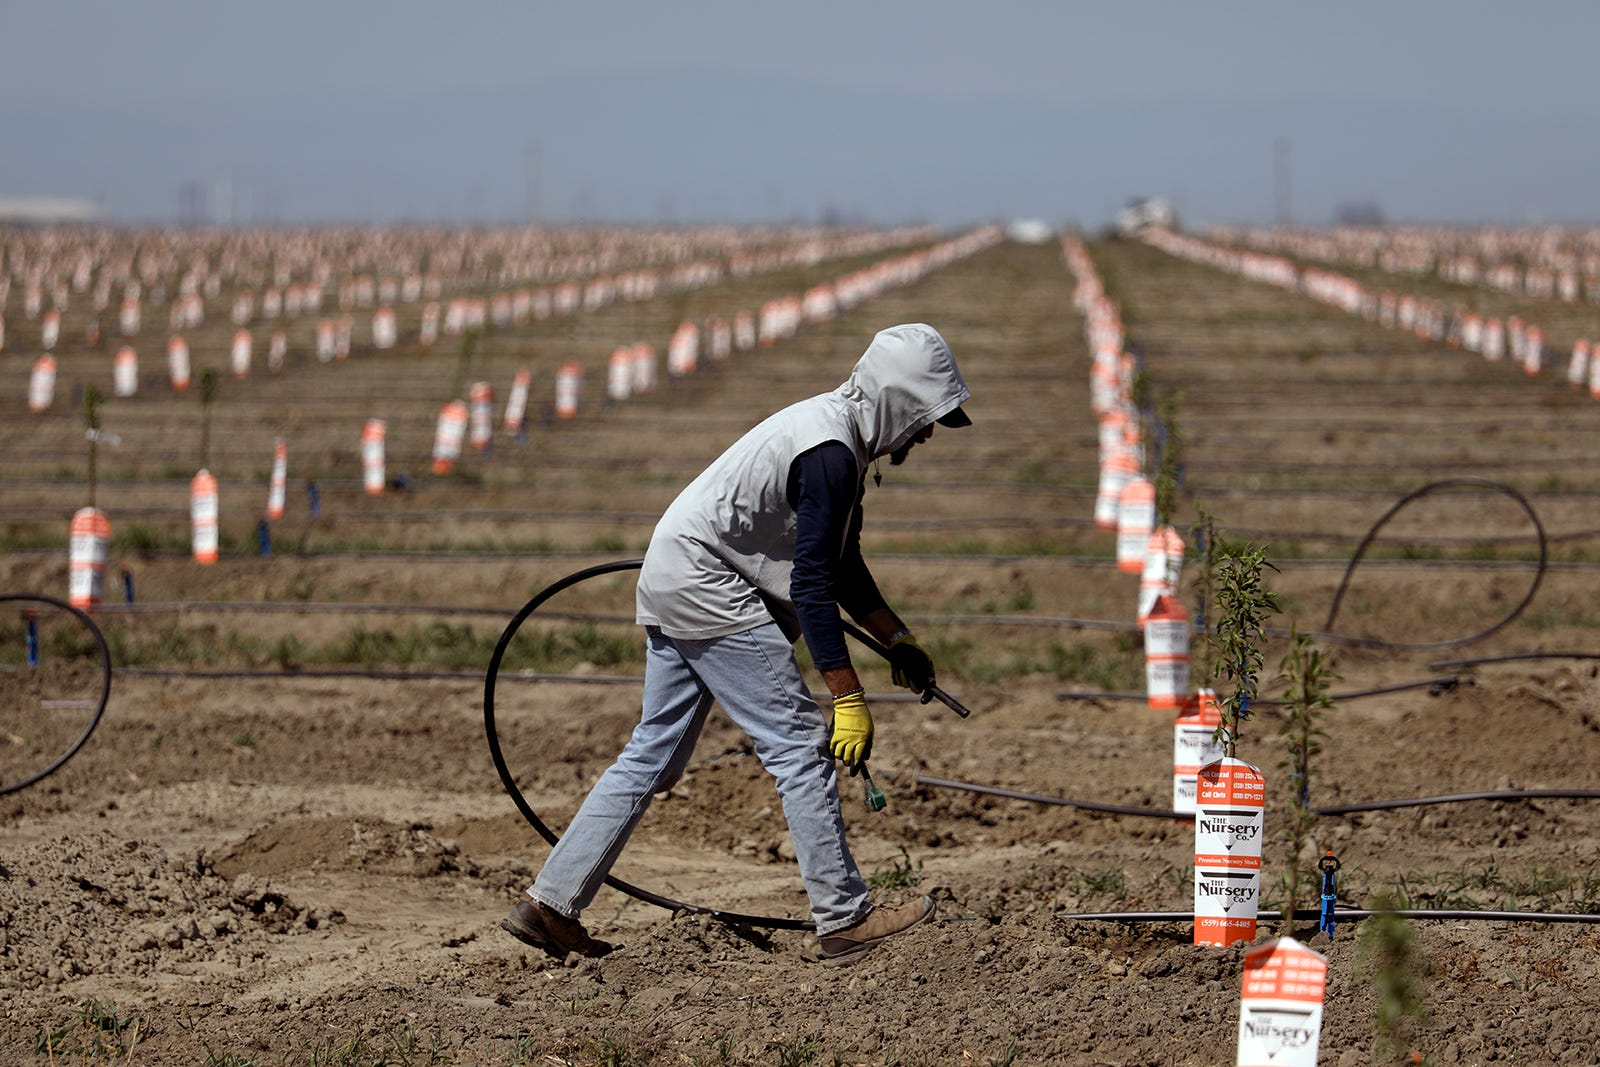 Wells dry up, crops imperiled, farmworkers in limbo as California drought grips San Joaquin Valley 1